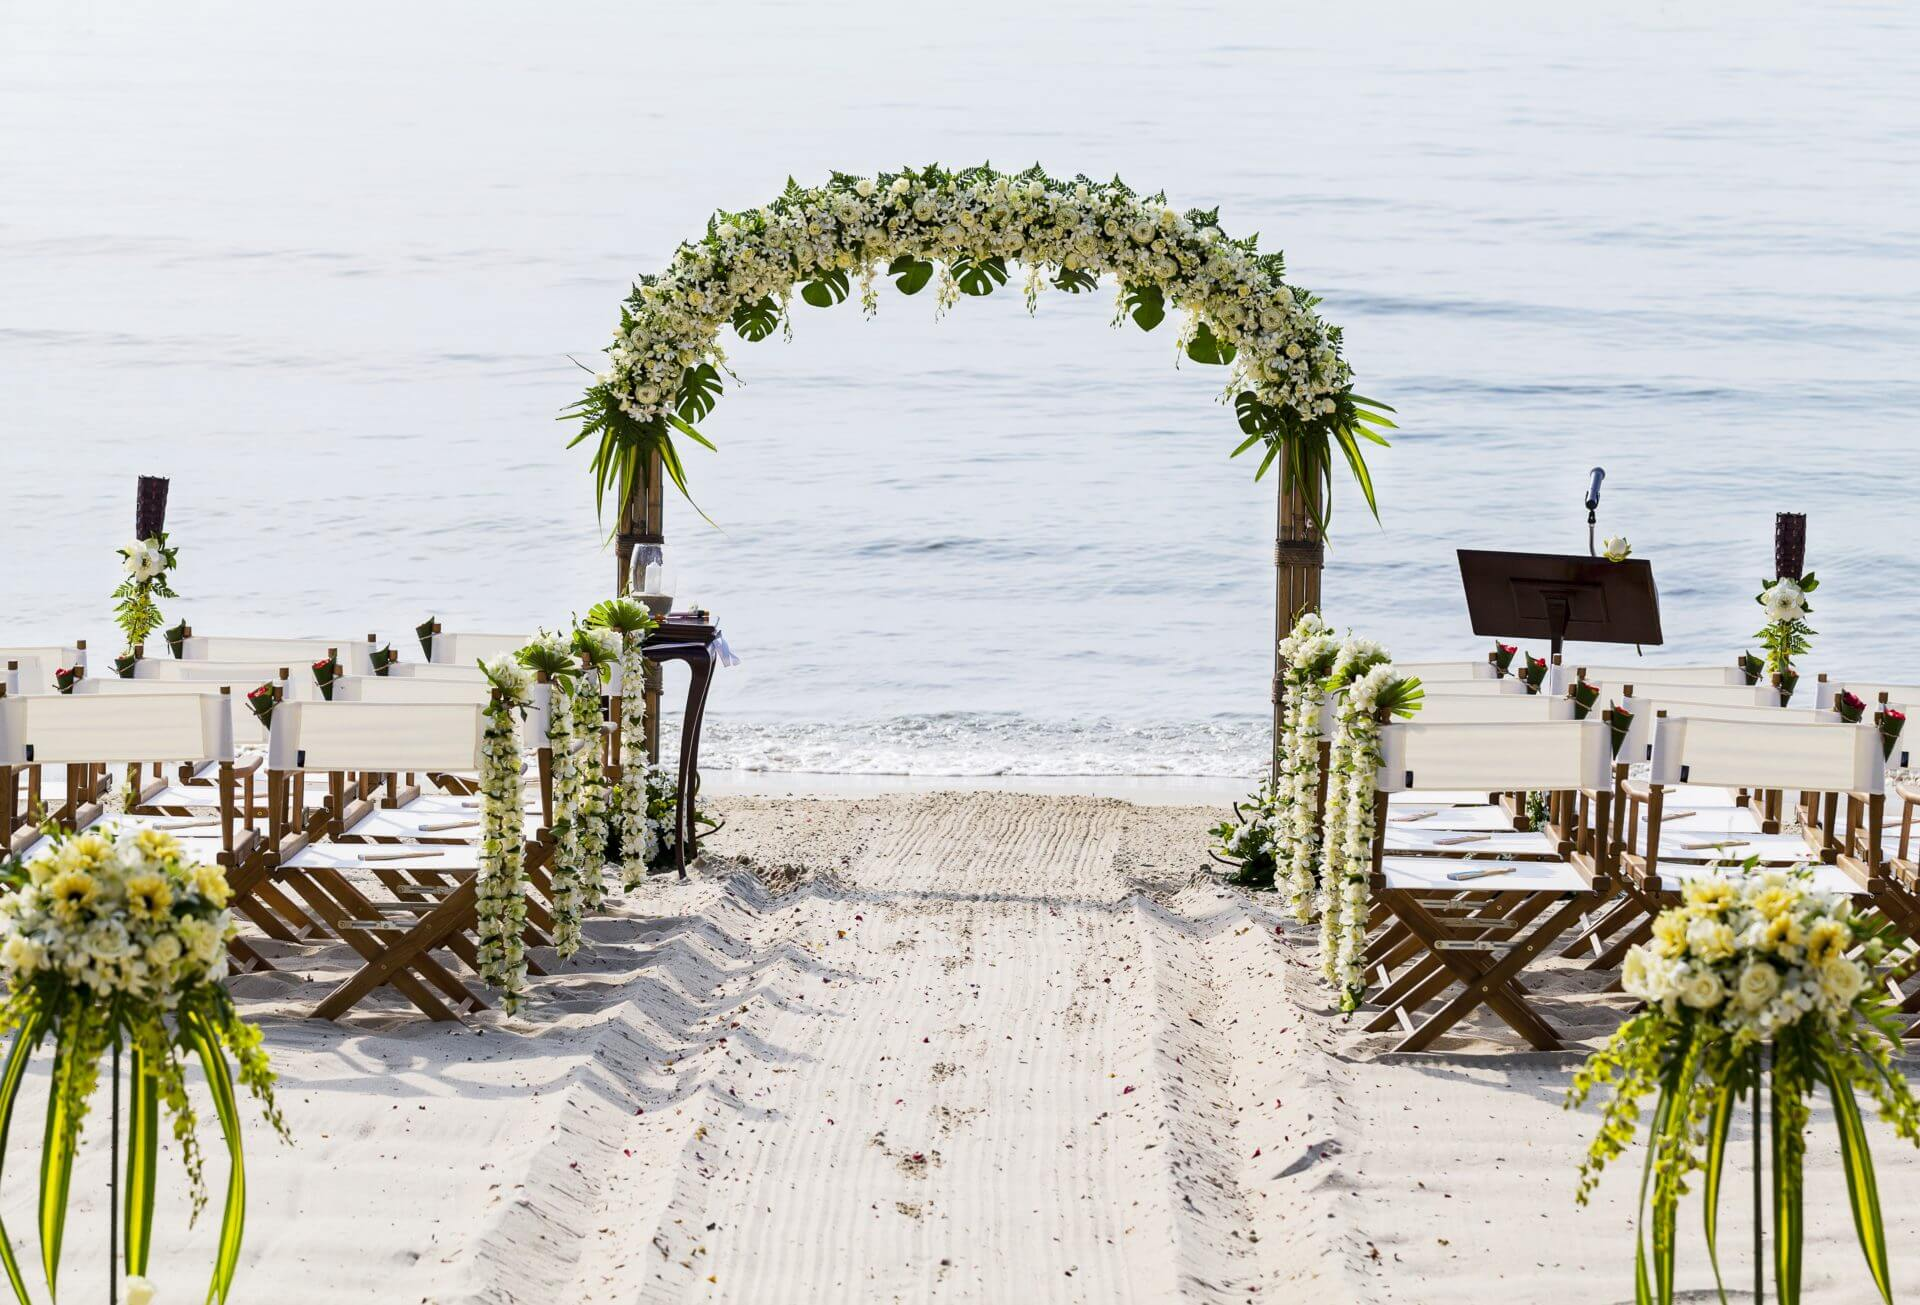 Destination wedding planner Dominican Republic - Your Weddings & Events